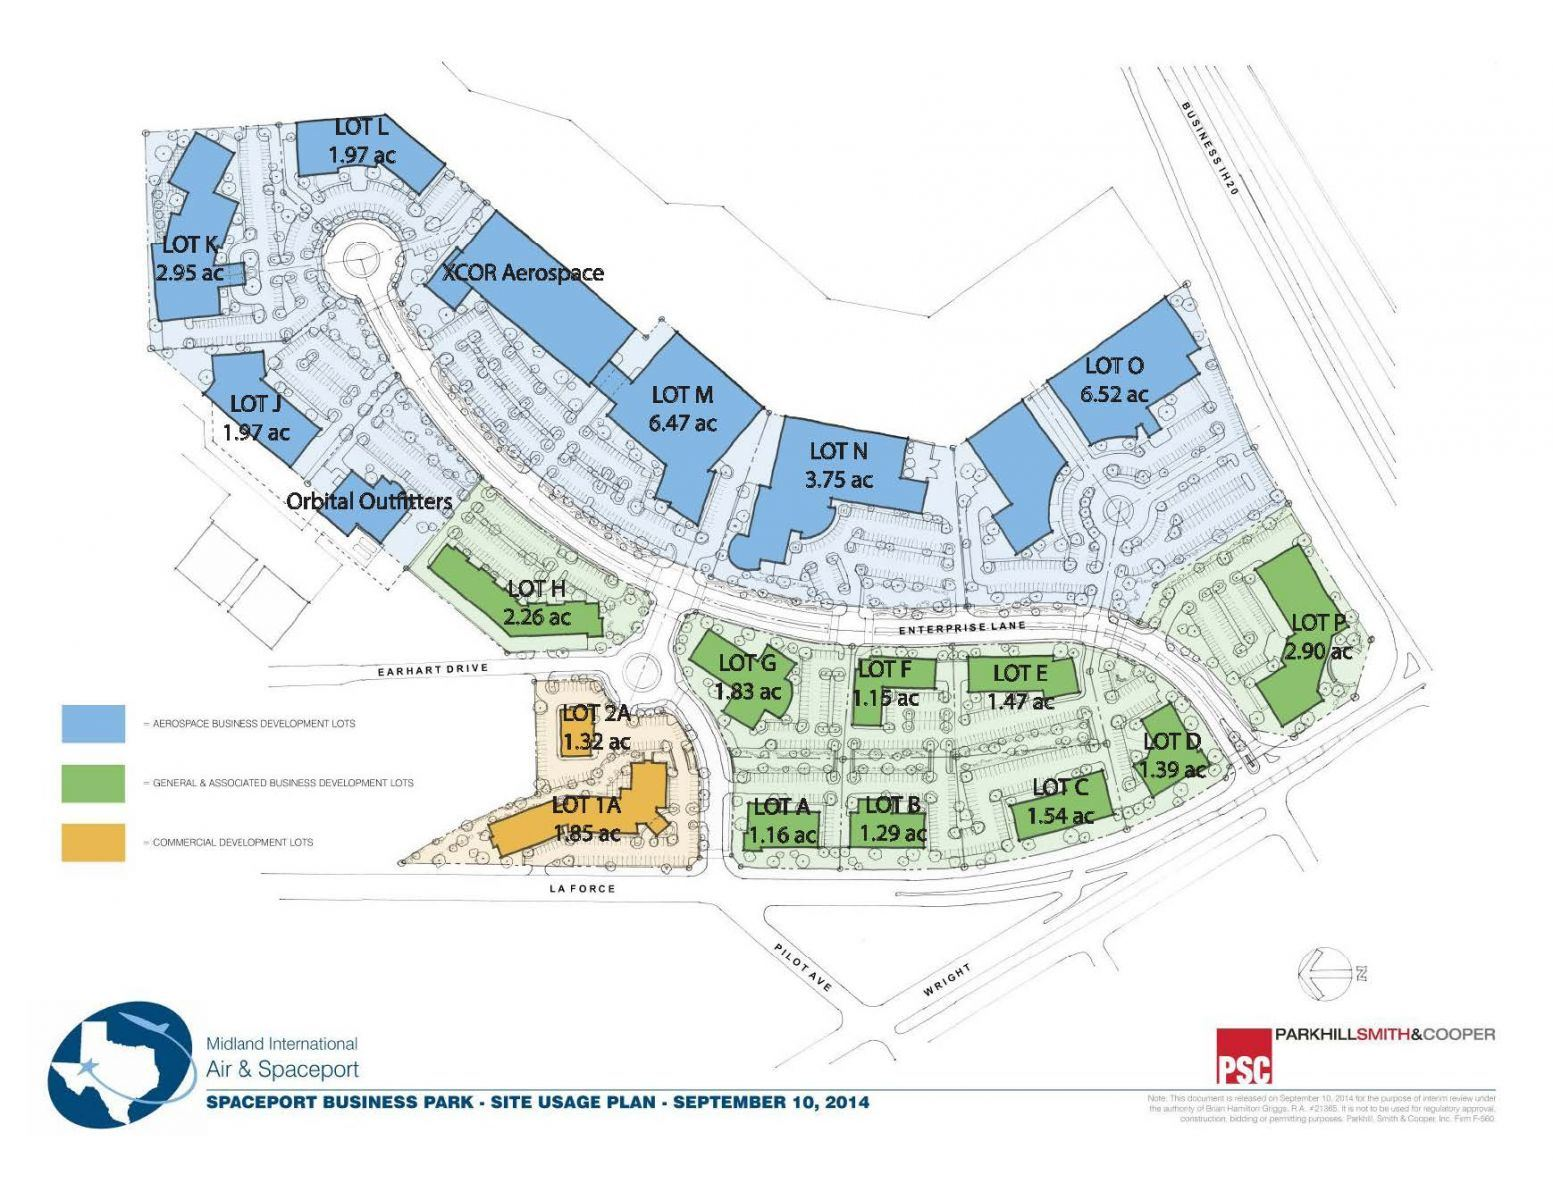 Concenptual Site Usage Plan with Plot Acres